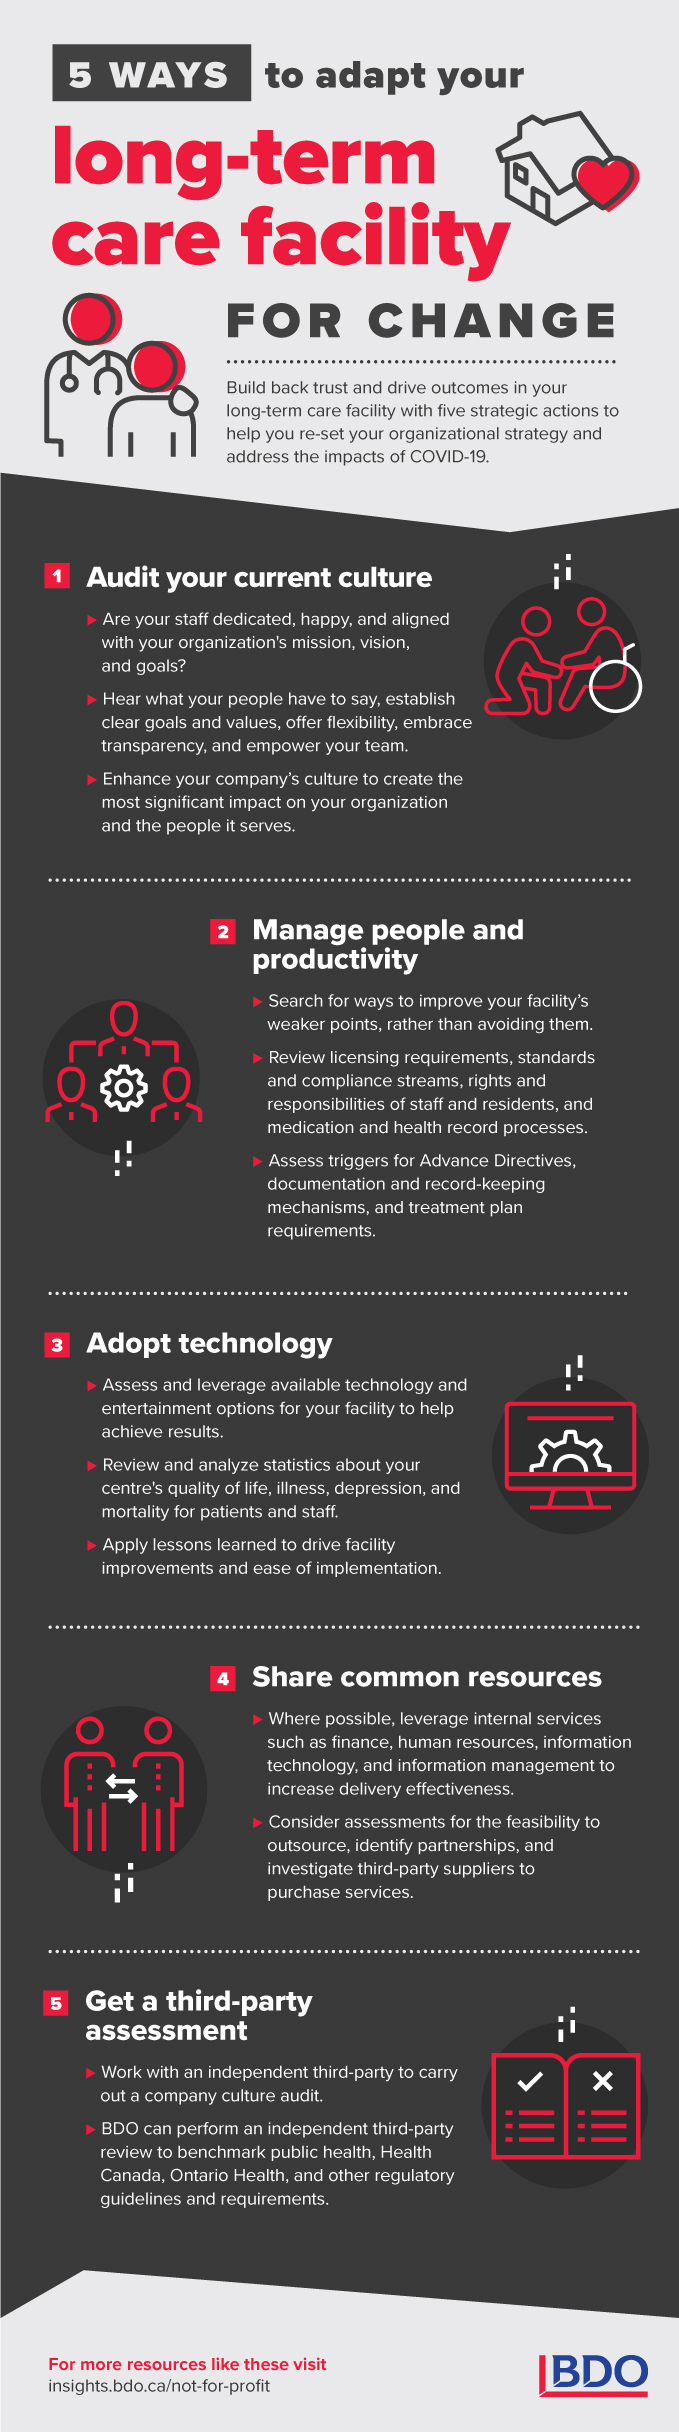 Click here to view our infographic about adapting your long-term care facility for change